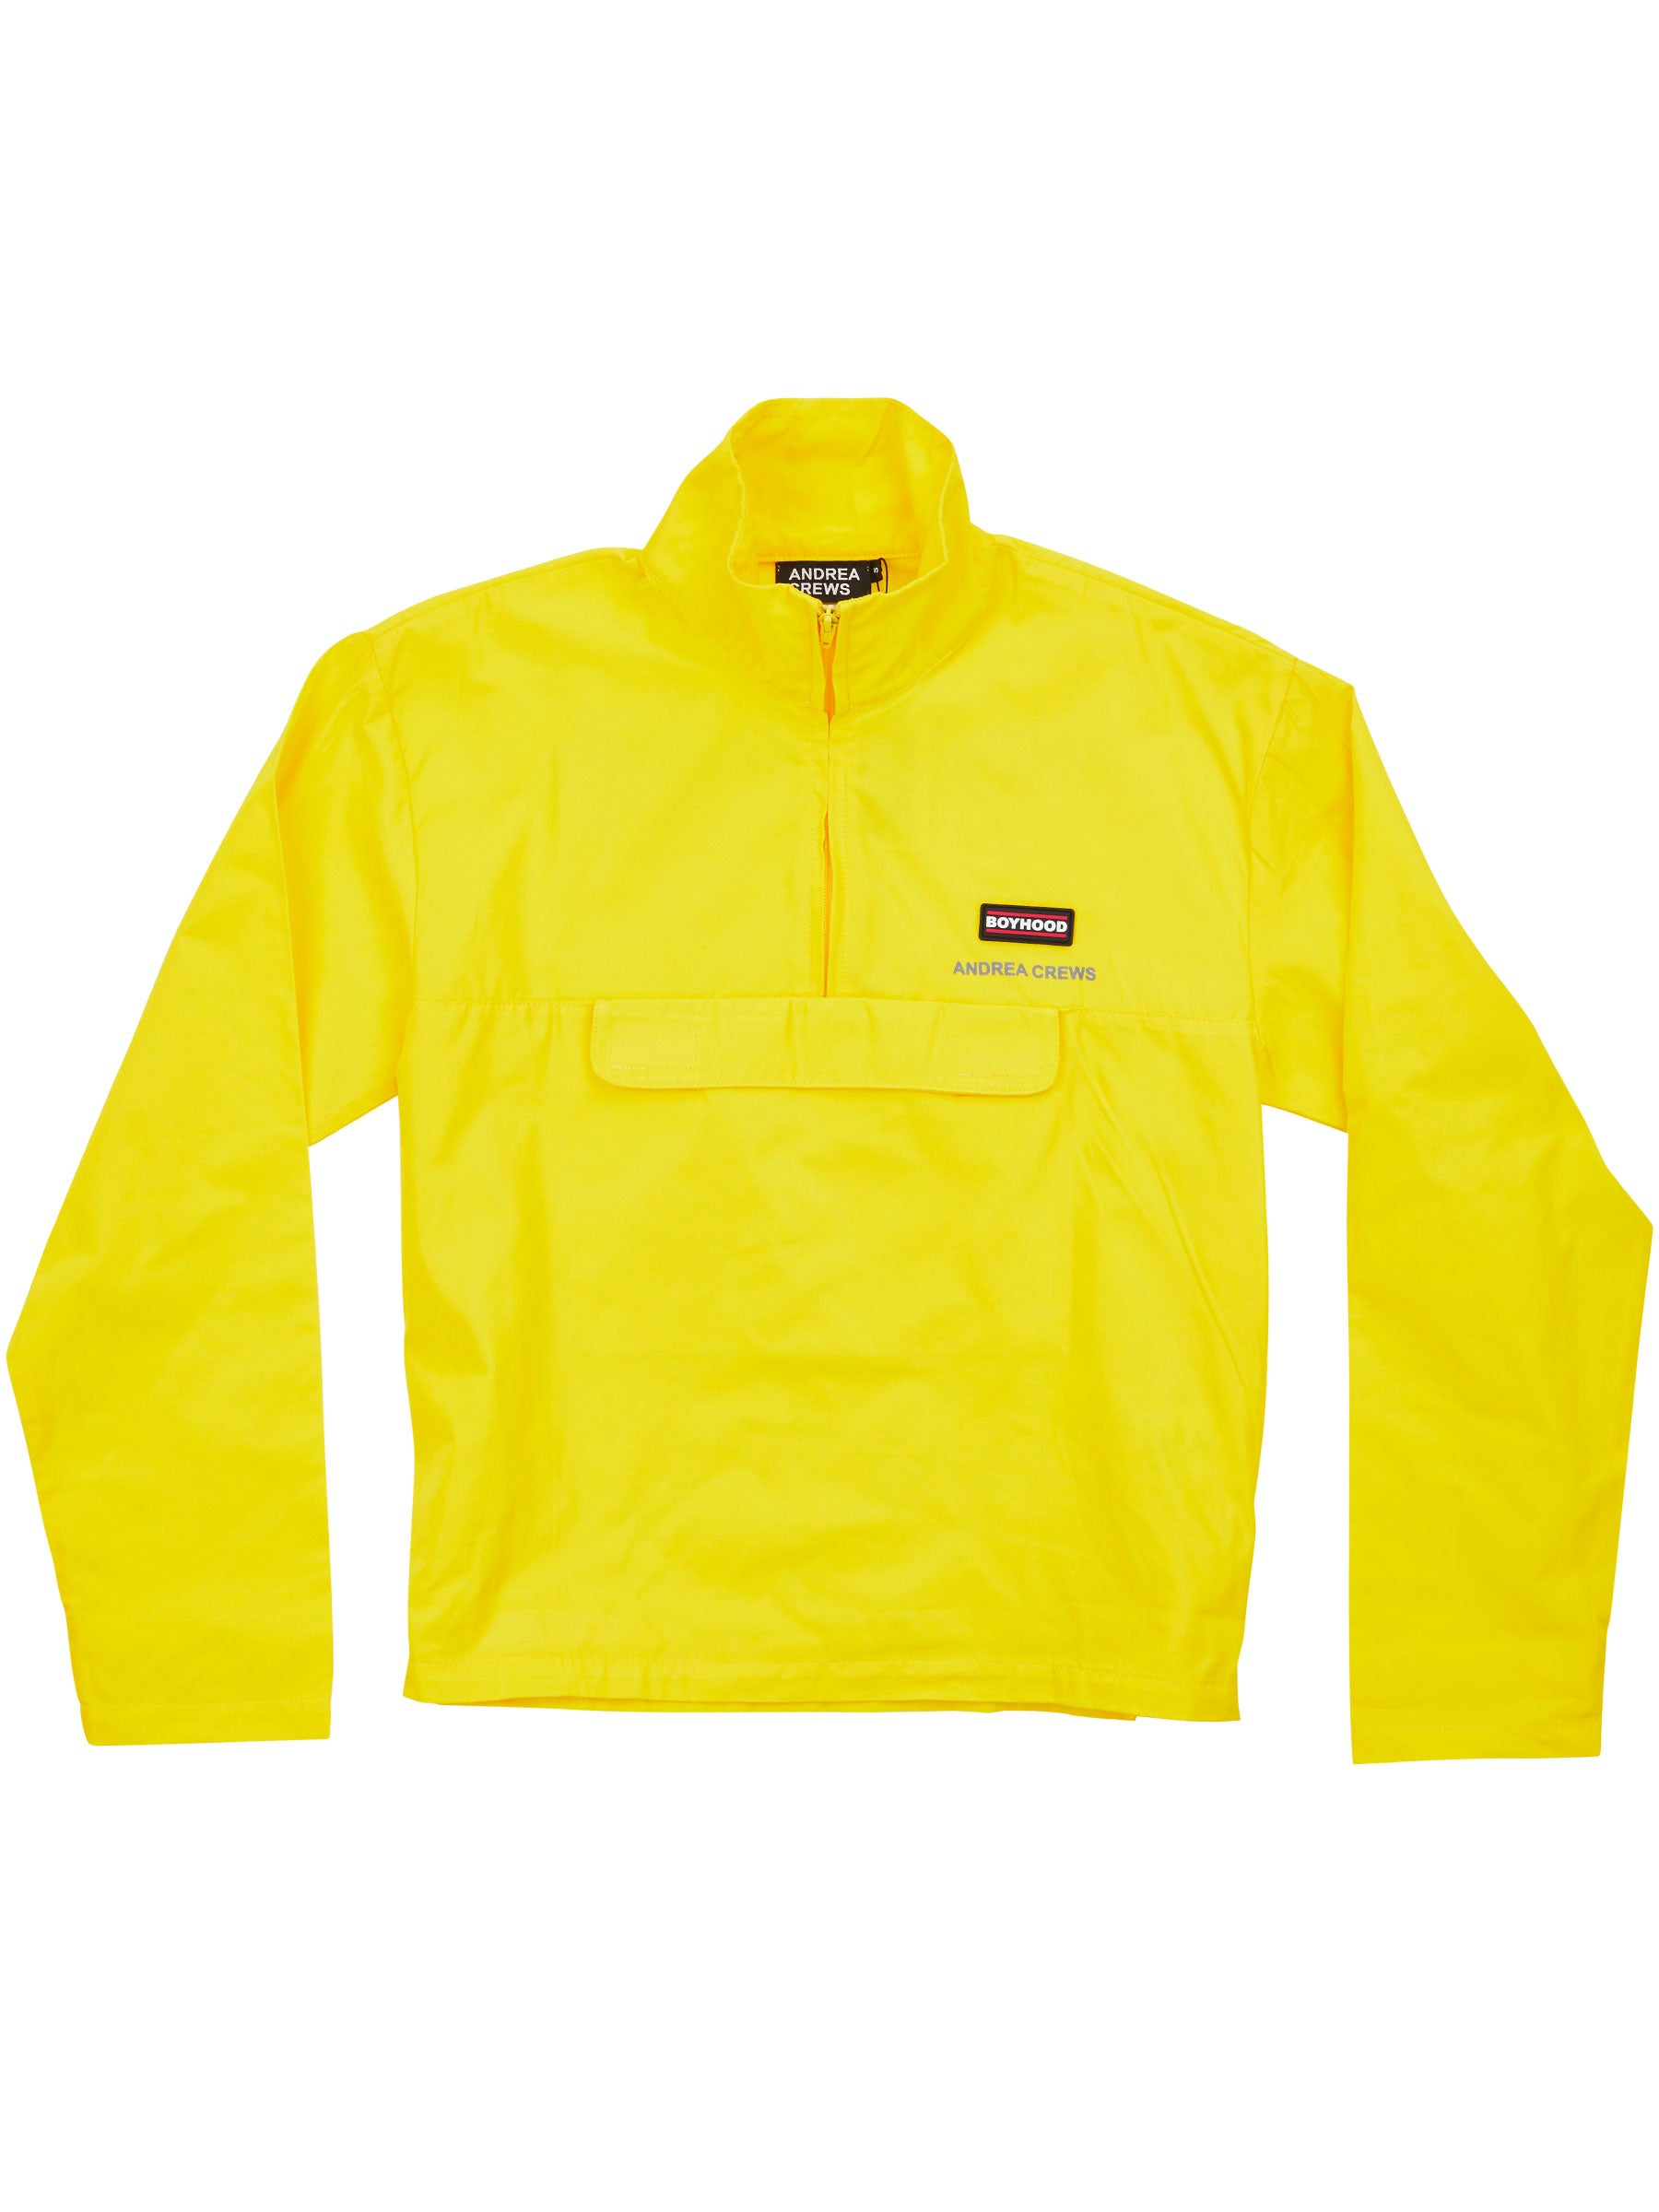 x Andrea Crews Track Jacket